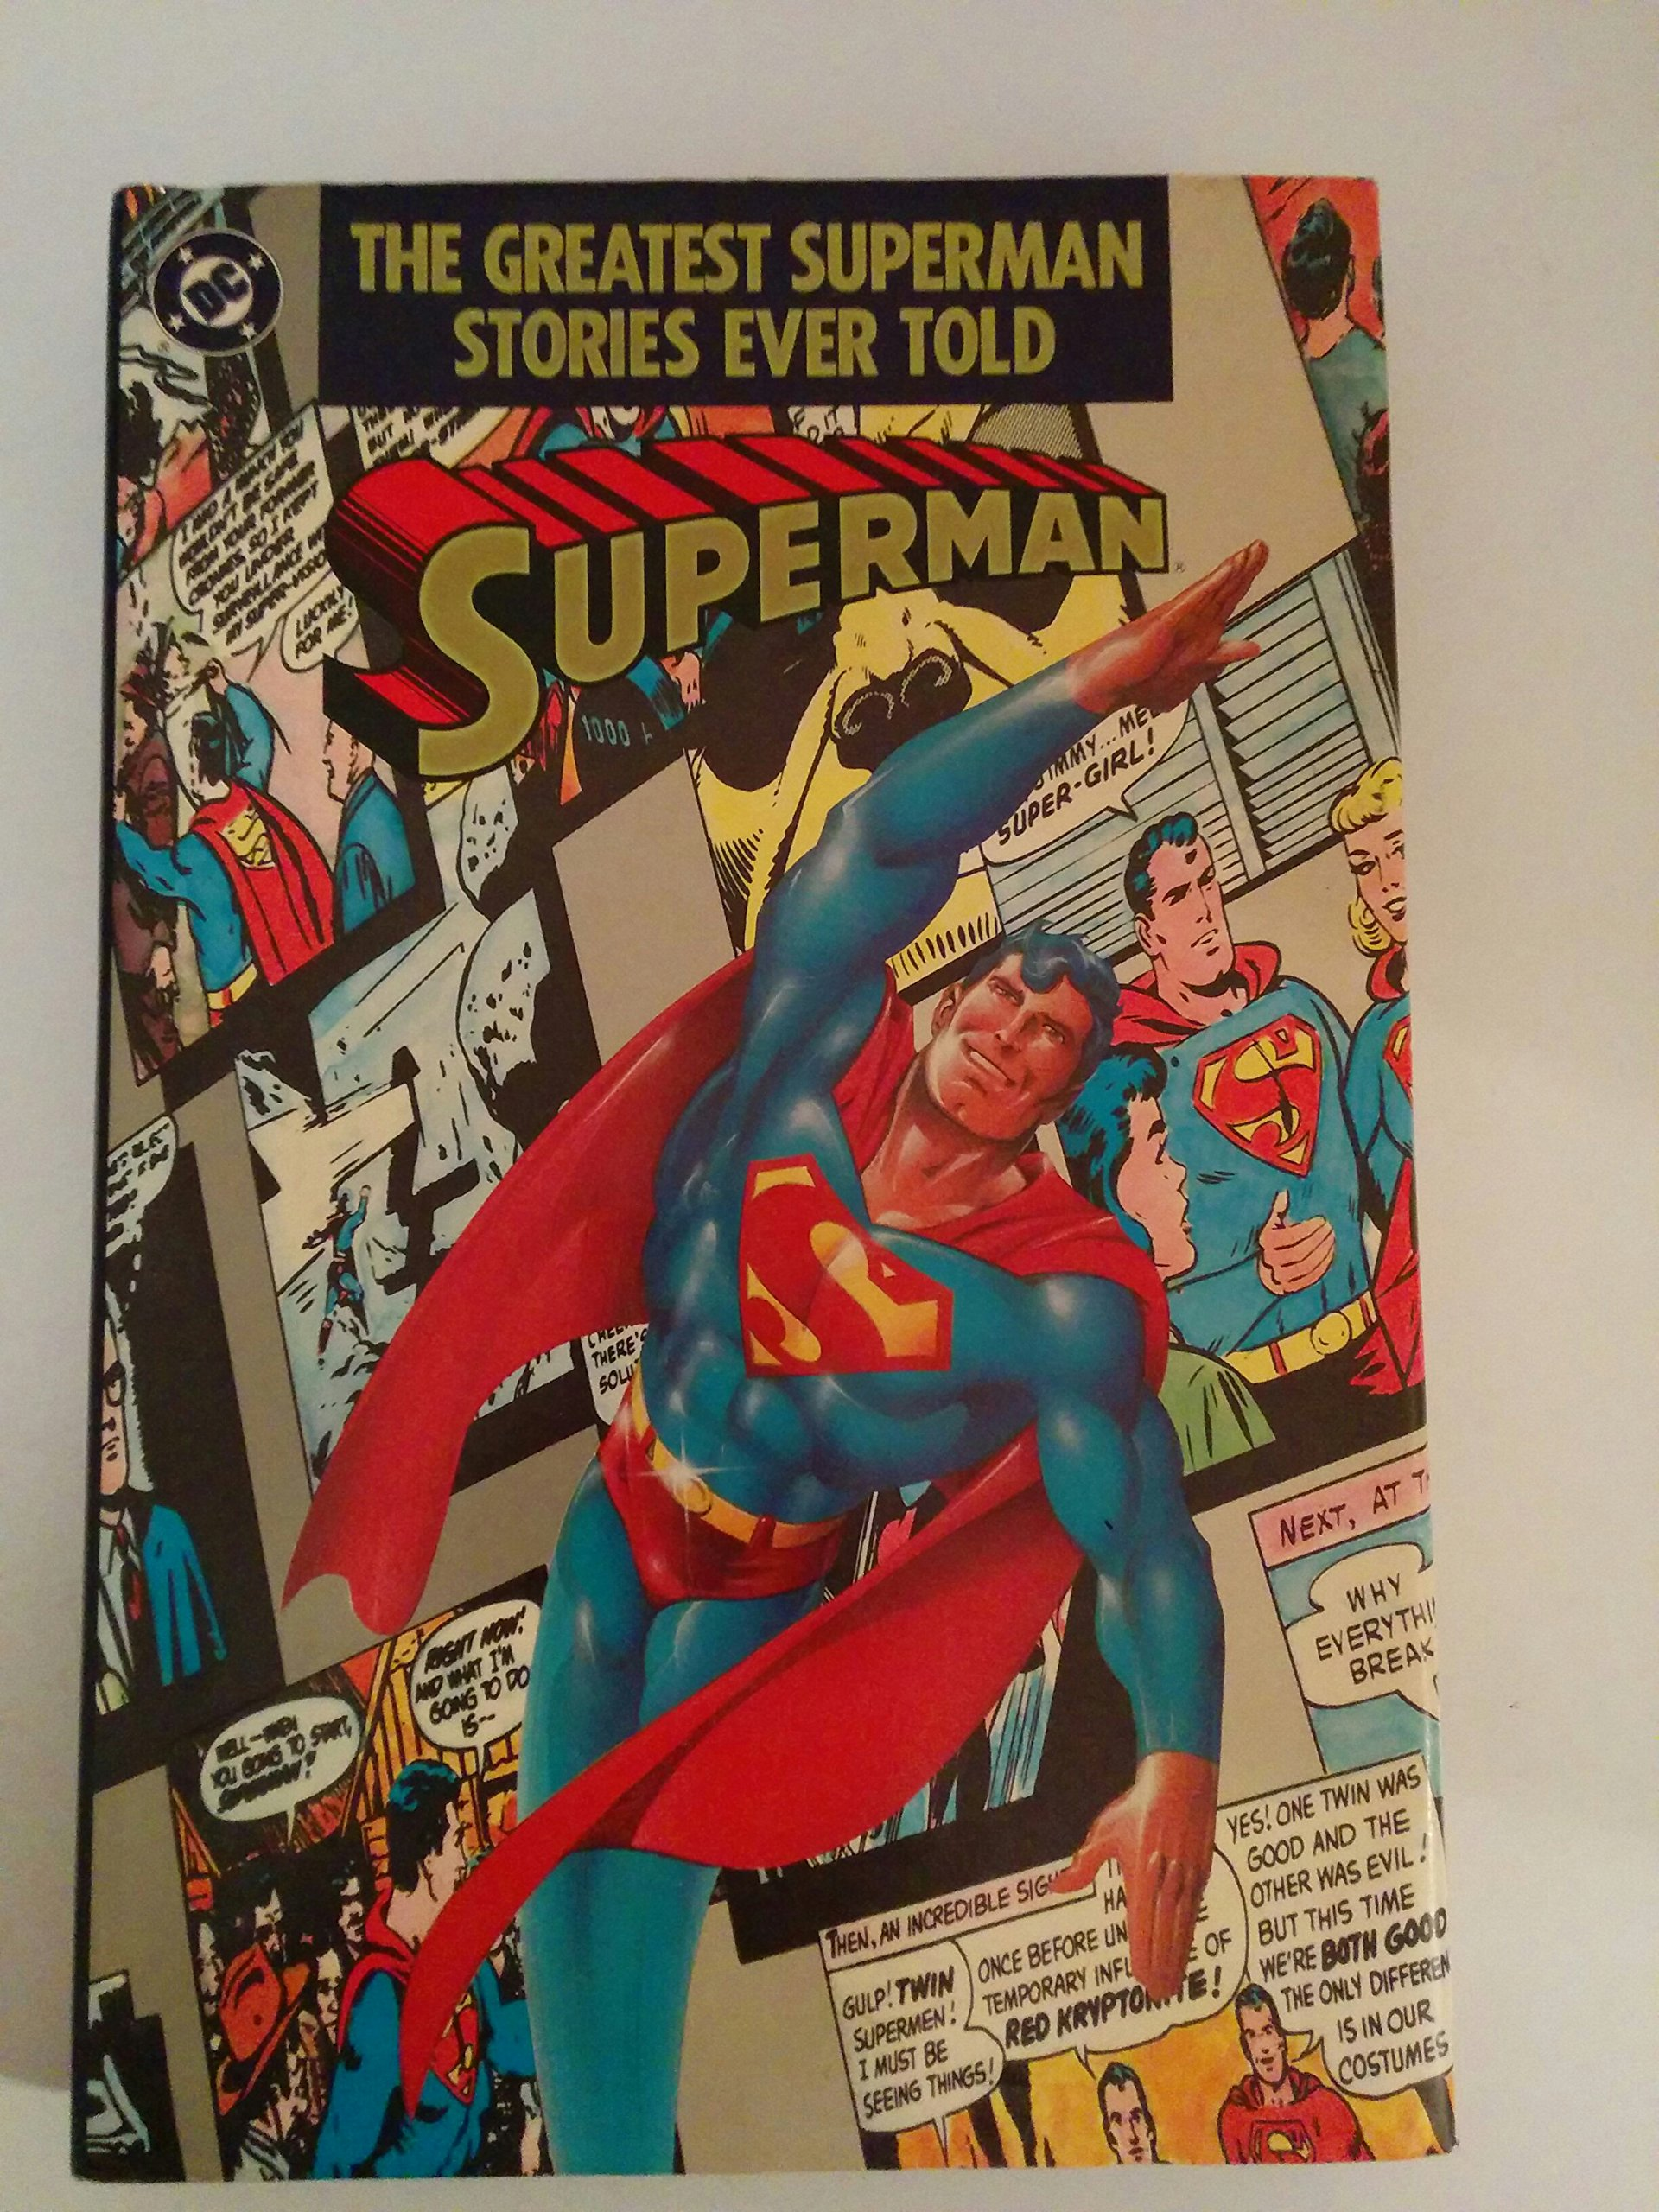 Amazon.com: The Greatest Superman stories ever told (9780930289294 ...